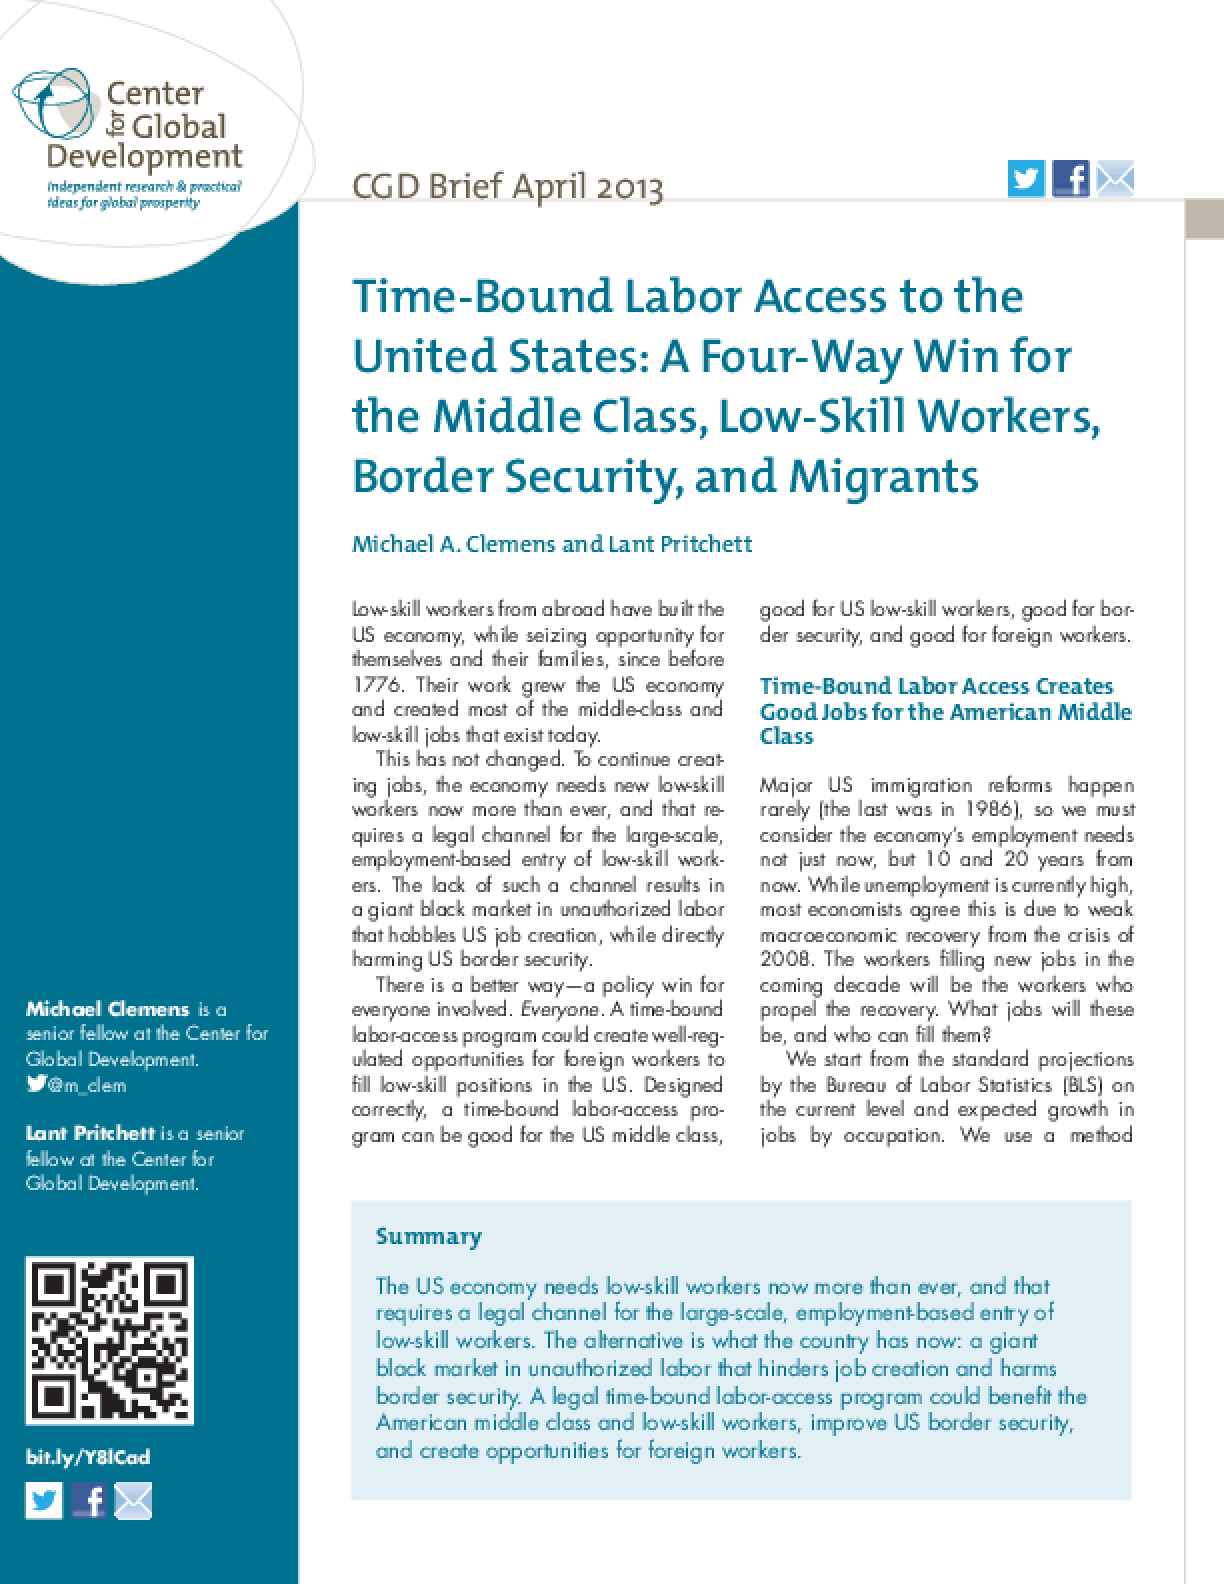 Time-Bound Labor Access to the United States: A Four-Way Win for the Middle Class, Low-Skill Workers, Border Security, and Migrants